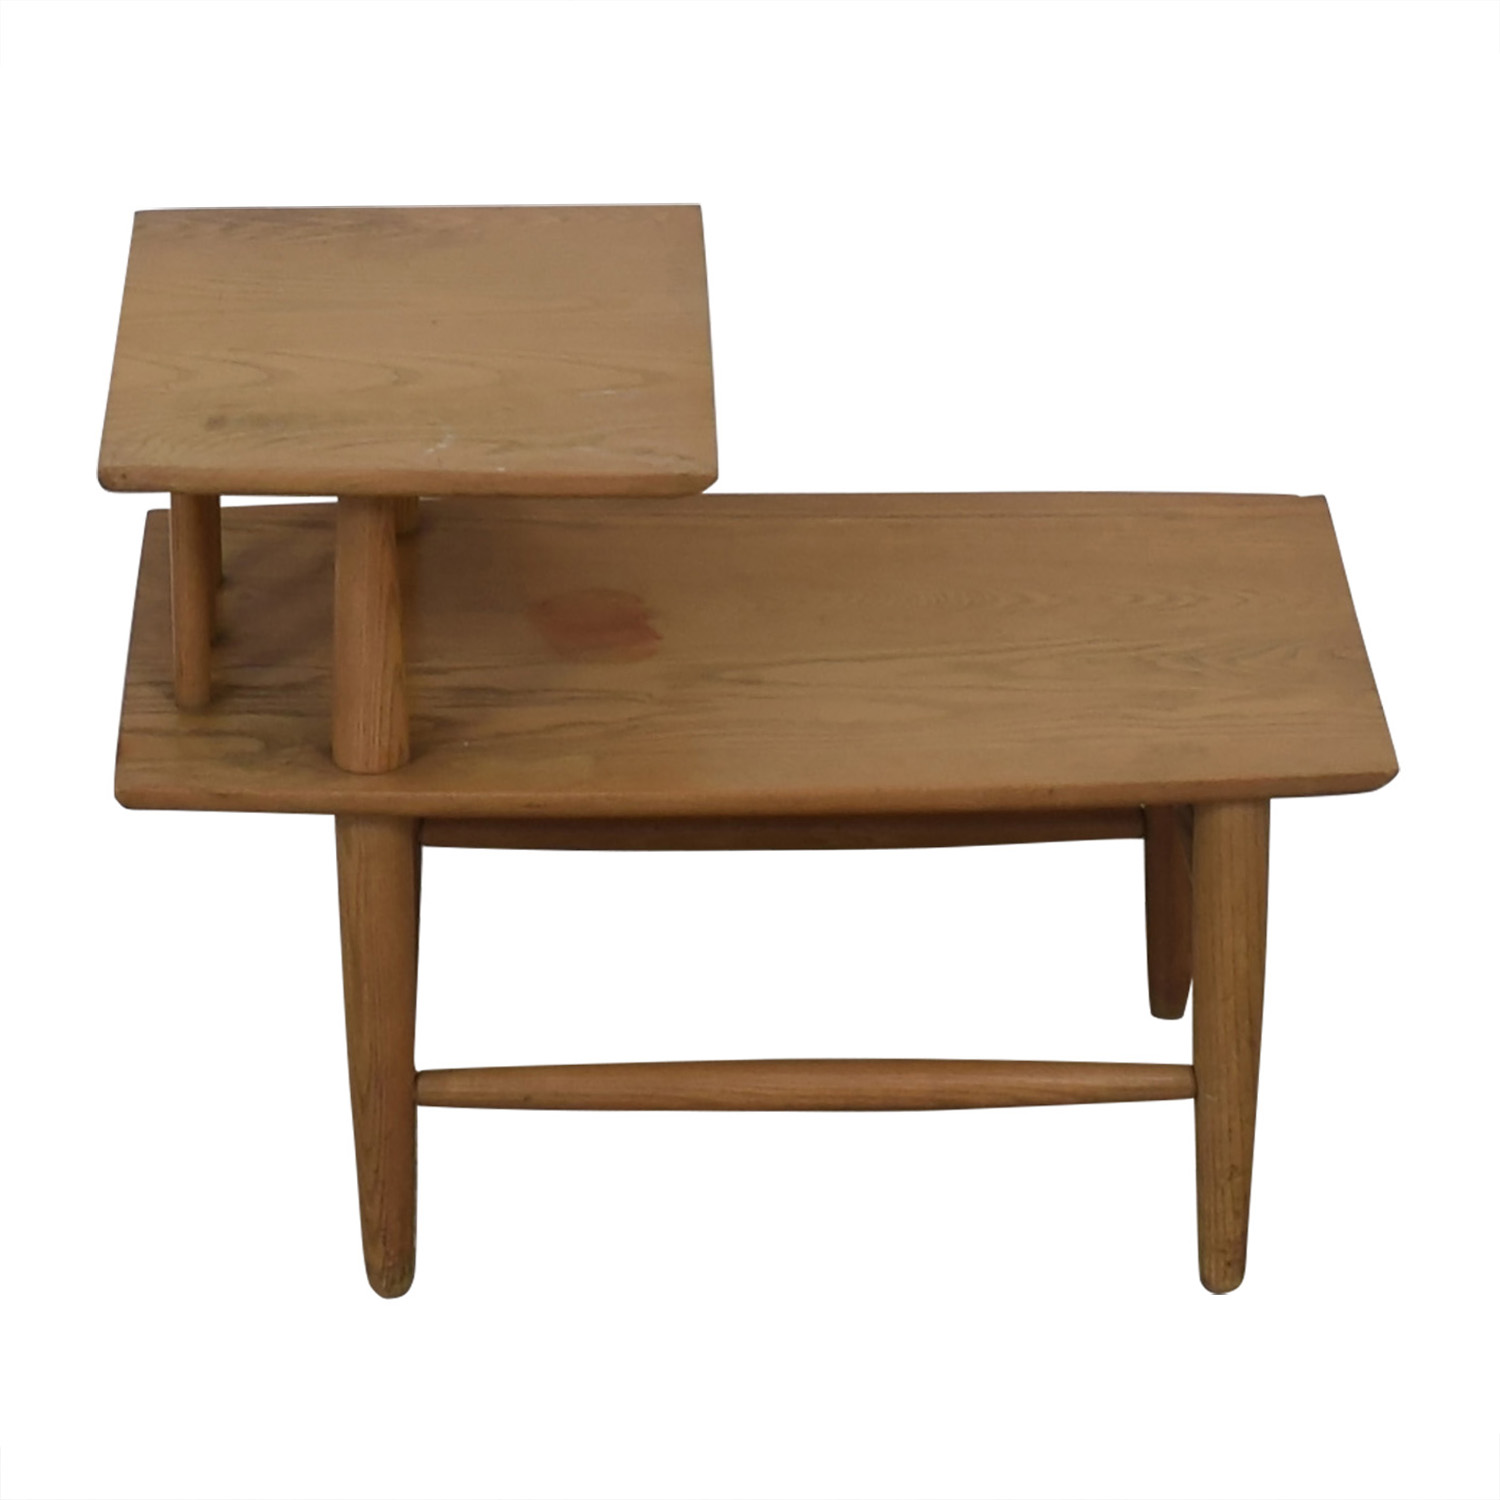 buy  Natural Wood Two-Level Coffee table online